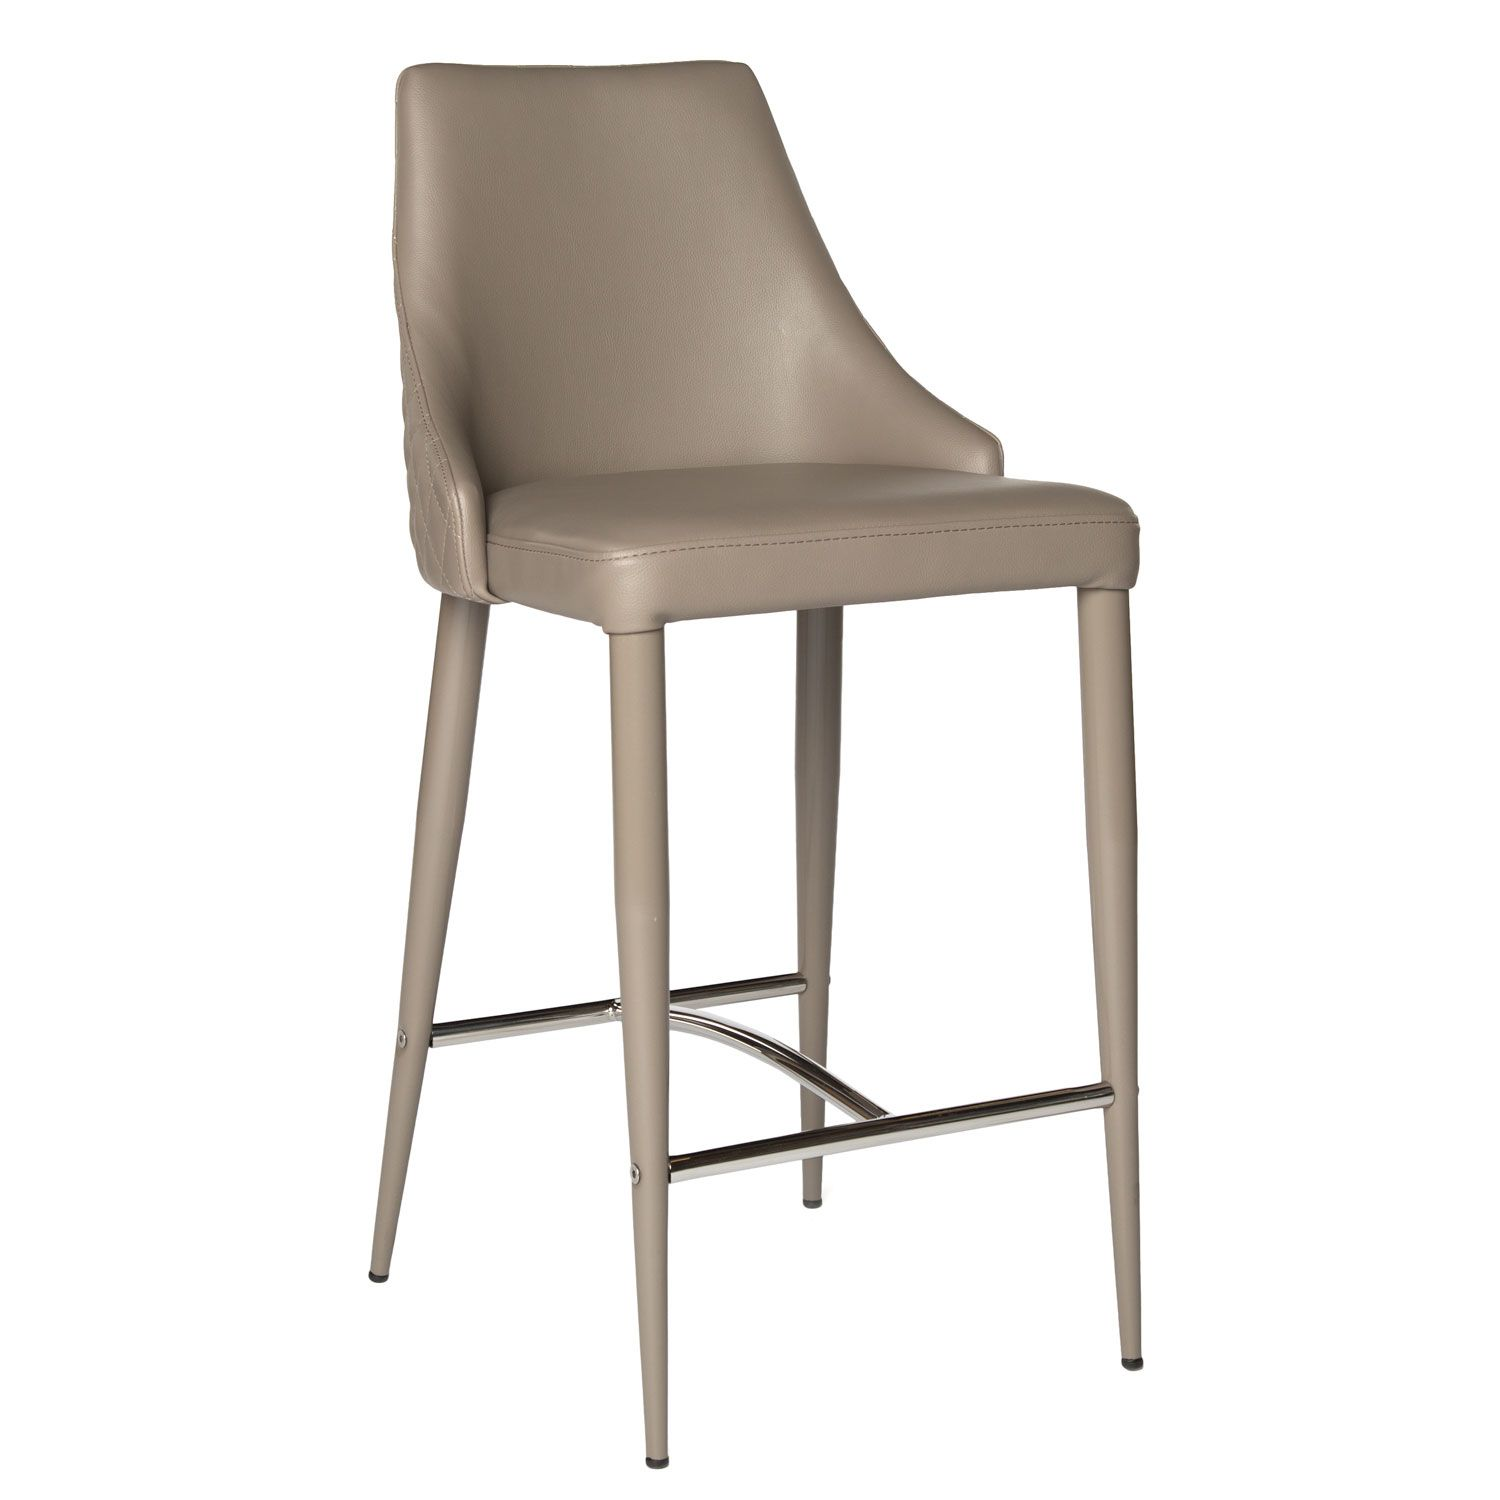 Taupe color counter height bar stool with quilted back design